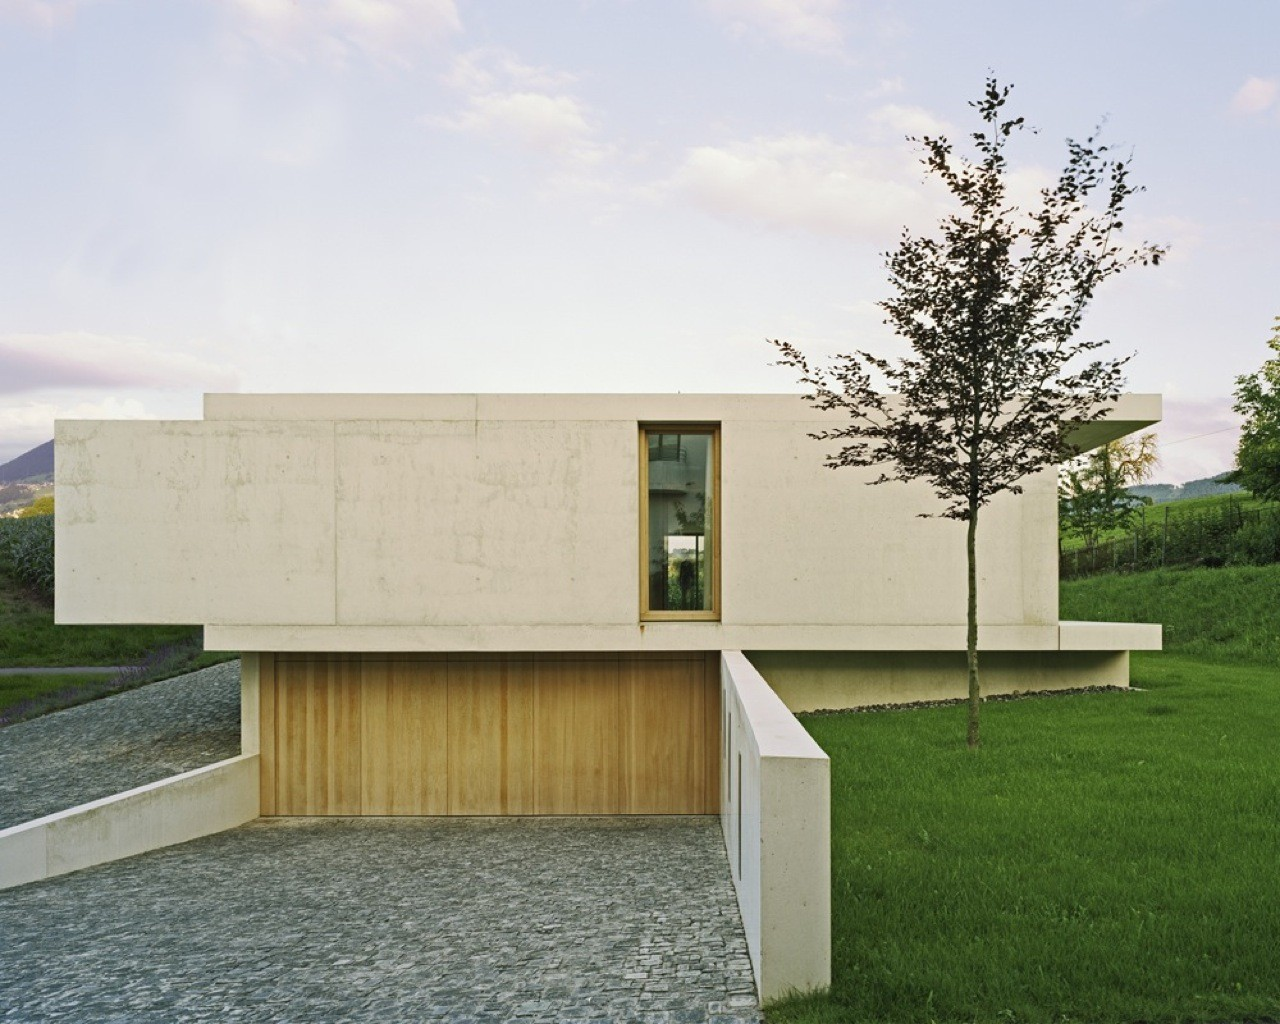 House At Zimmerberg Bottom / Rossetti + Wyss Architekten, © Jürg Zimmermann